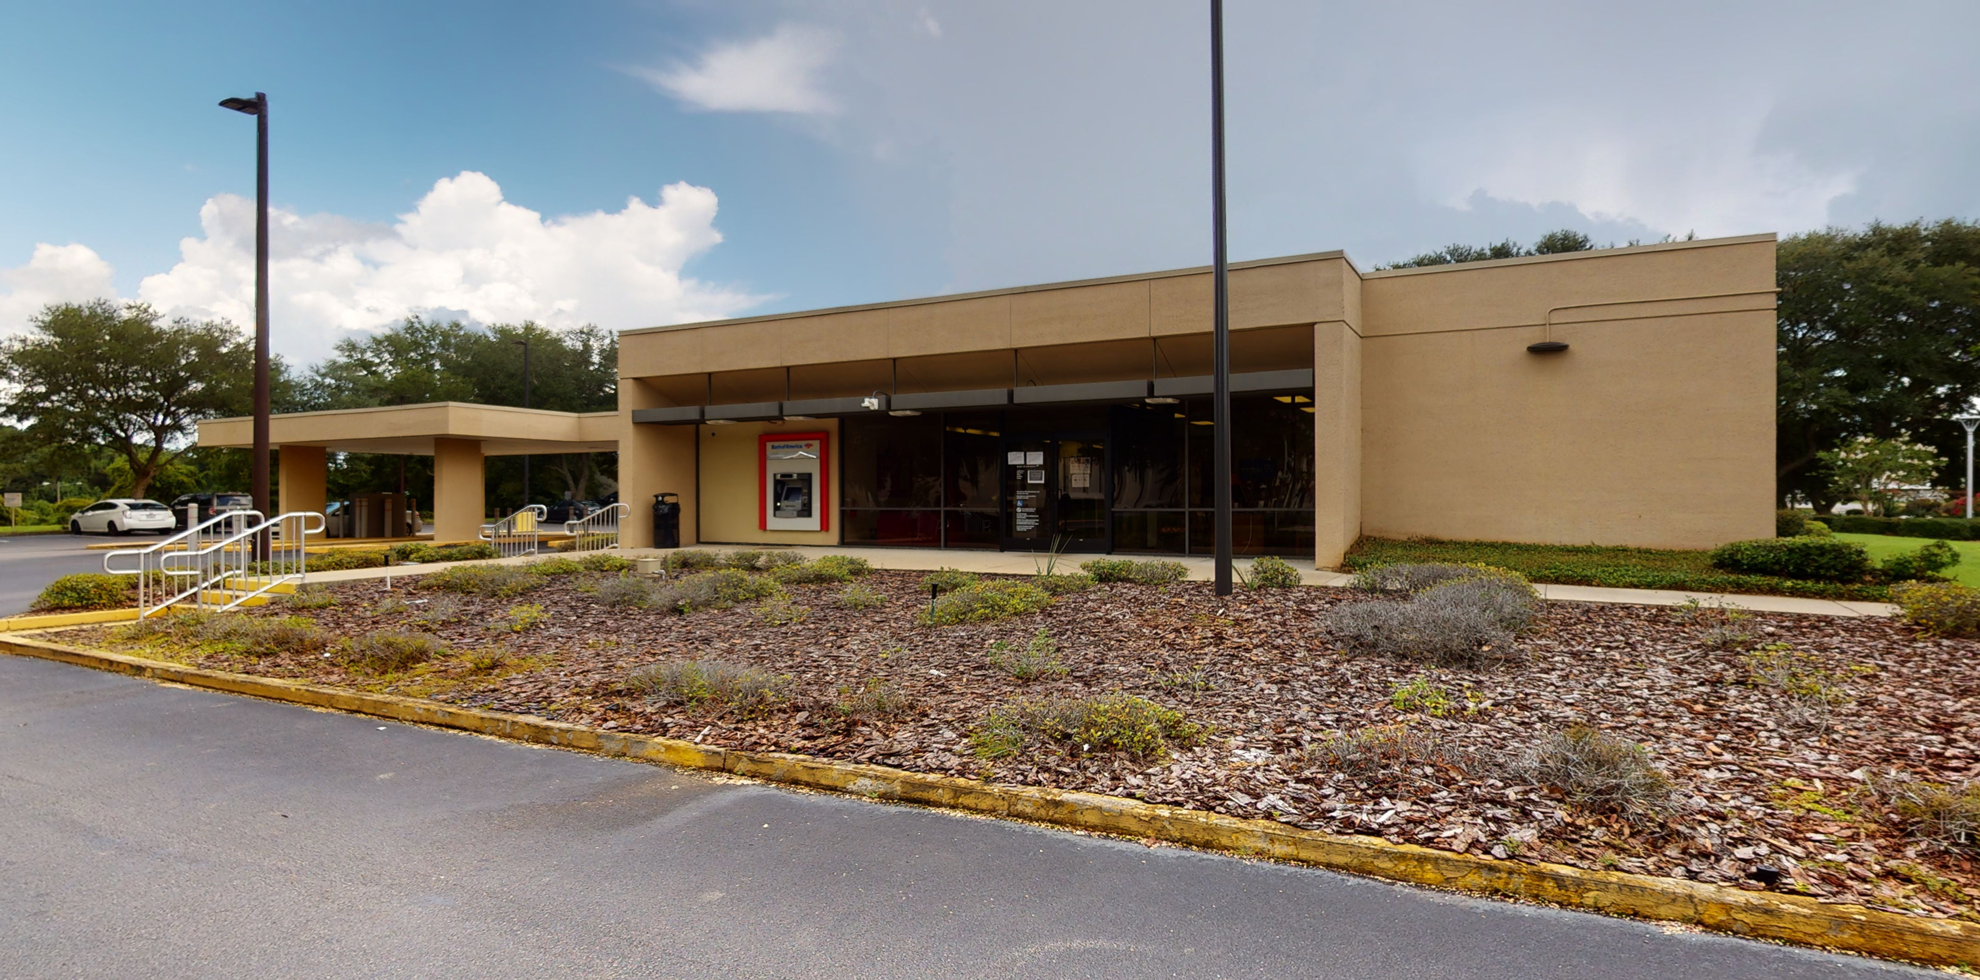 Bank of America financial center with drive-thru ATM and teller   2930 Apalachee Pkwy, Tallahassee, FL 32301